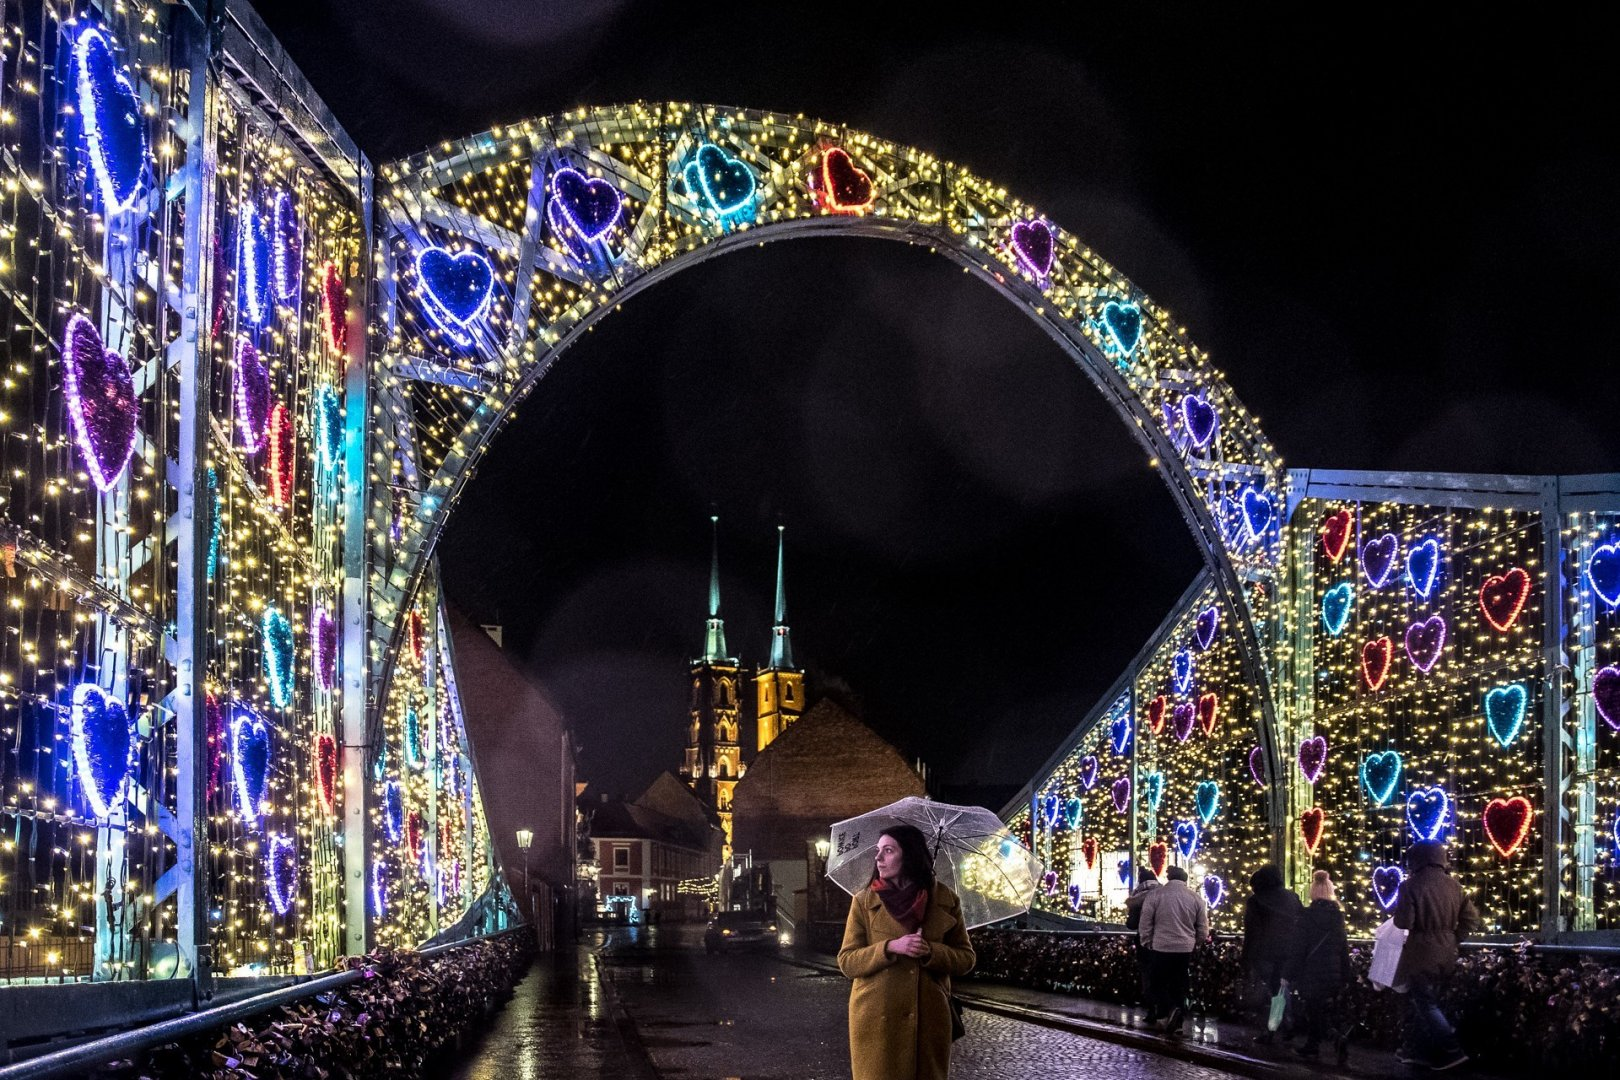 What should you see in Wroclaw in winter?